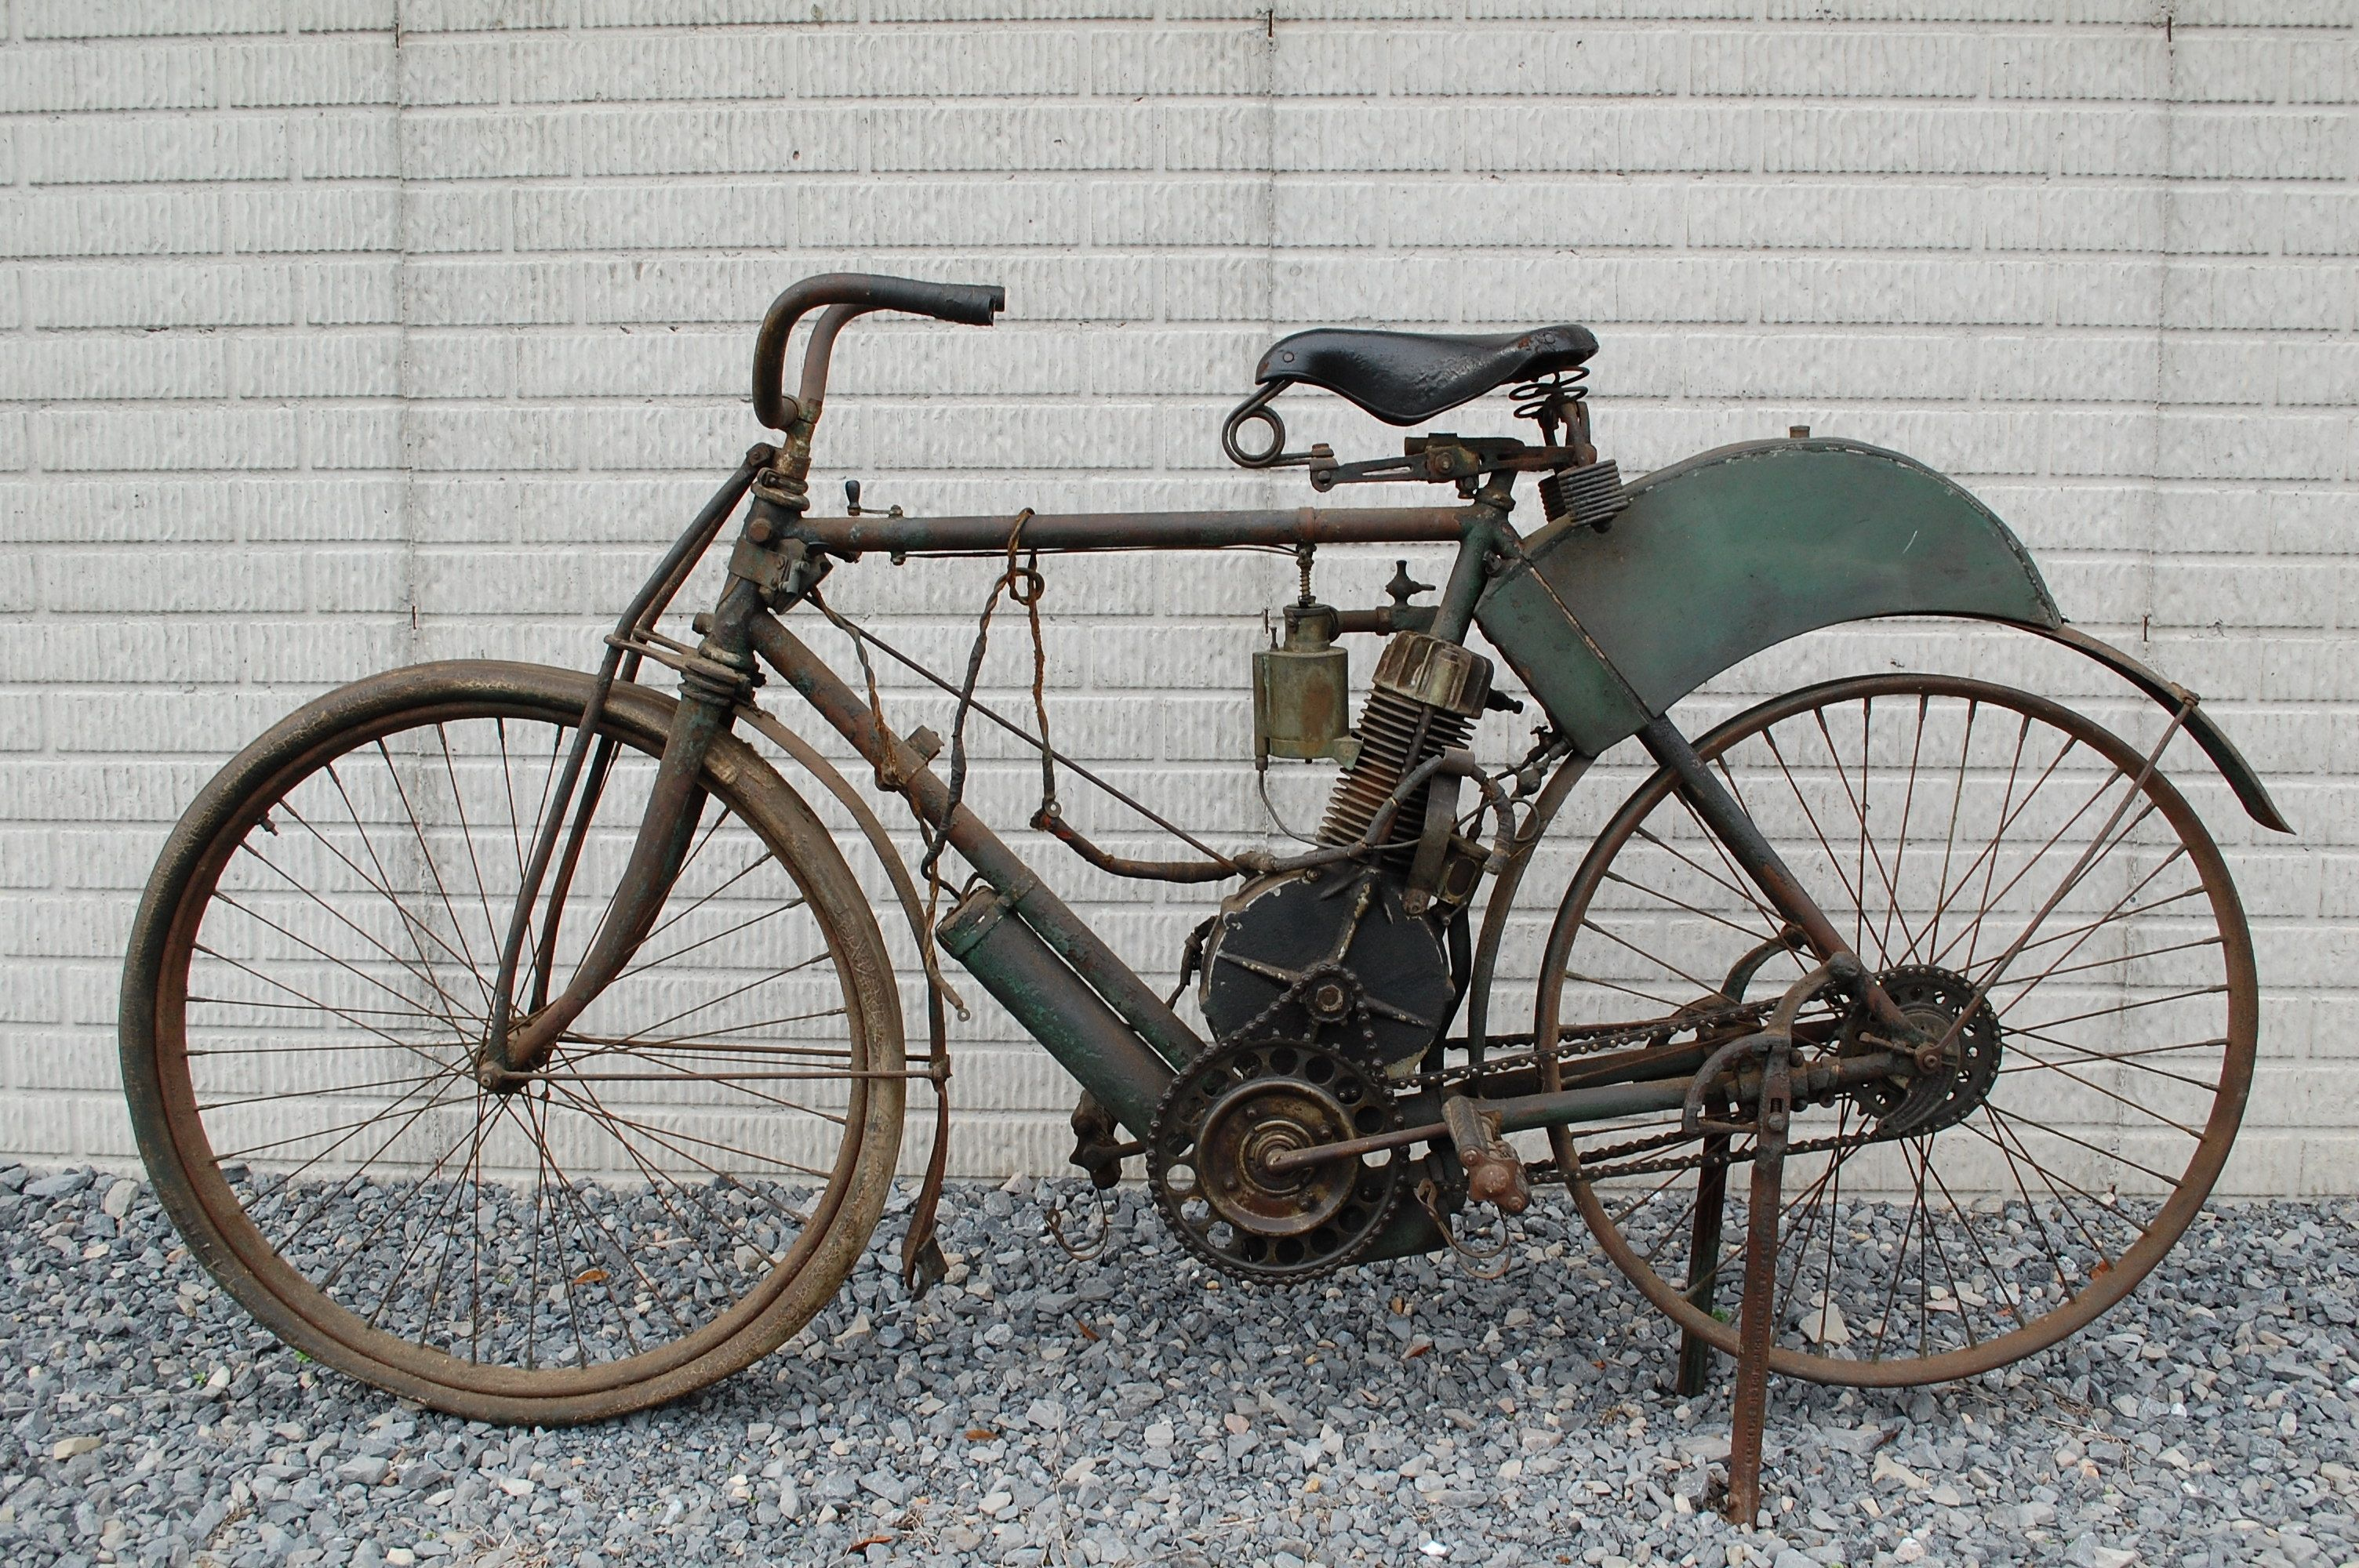 Vintage Wwii Inspired Electric Bike Indian Motorcycle Motorcycle American Made Motorcycles